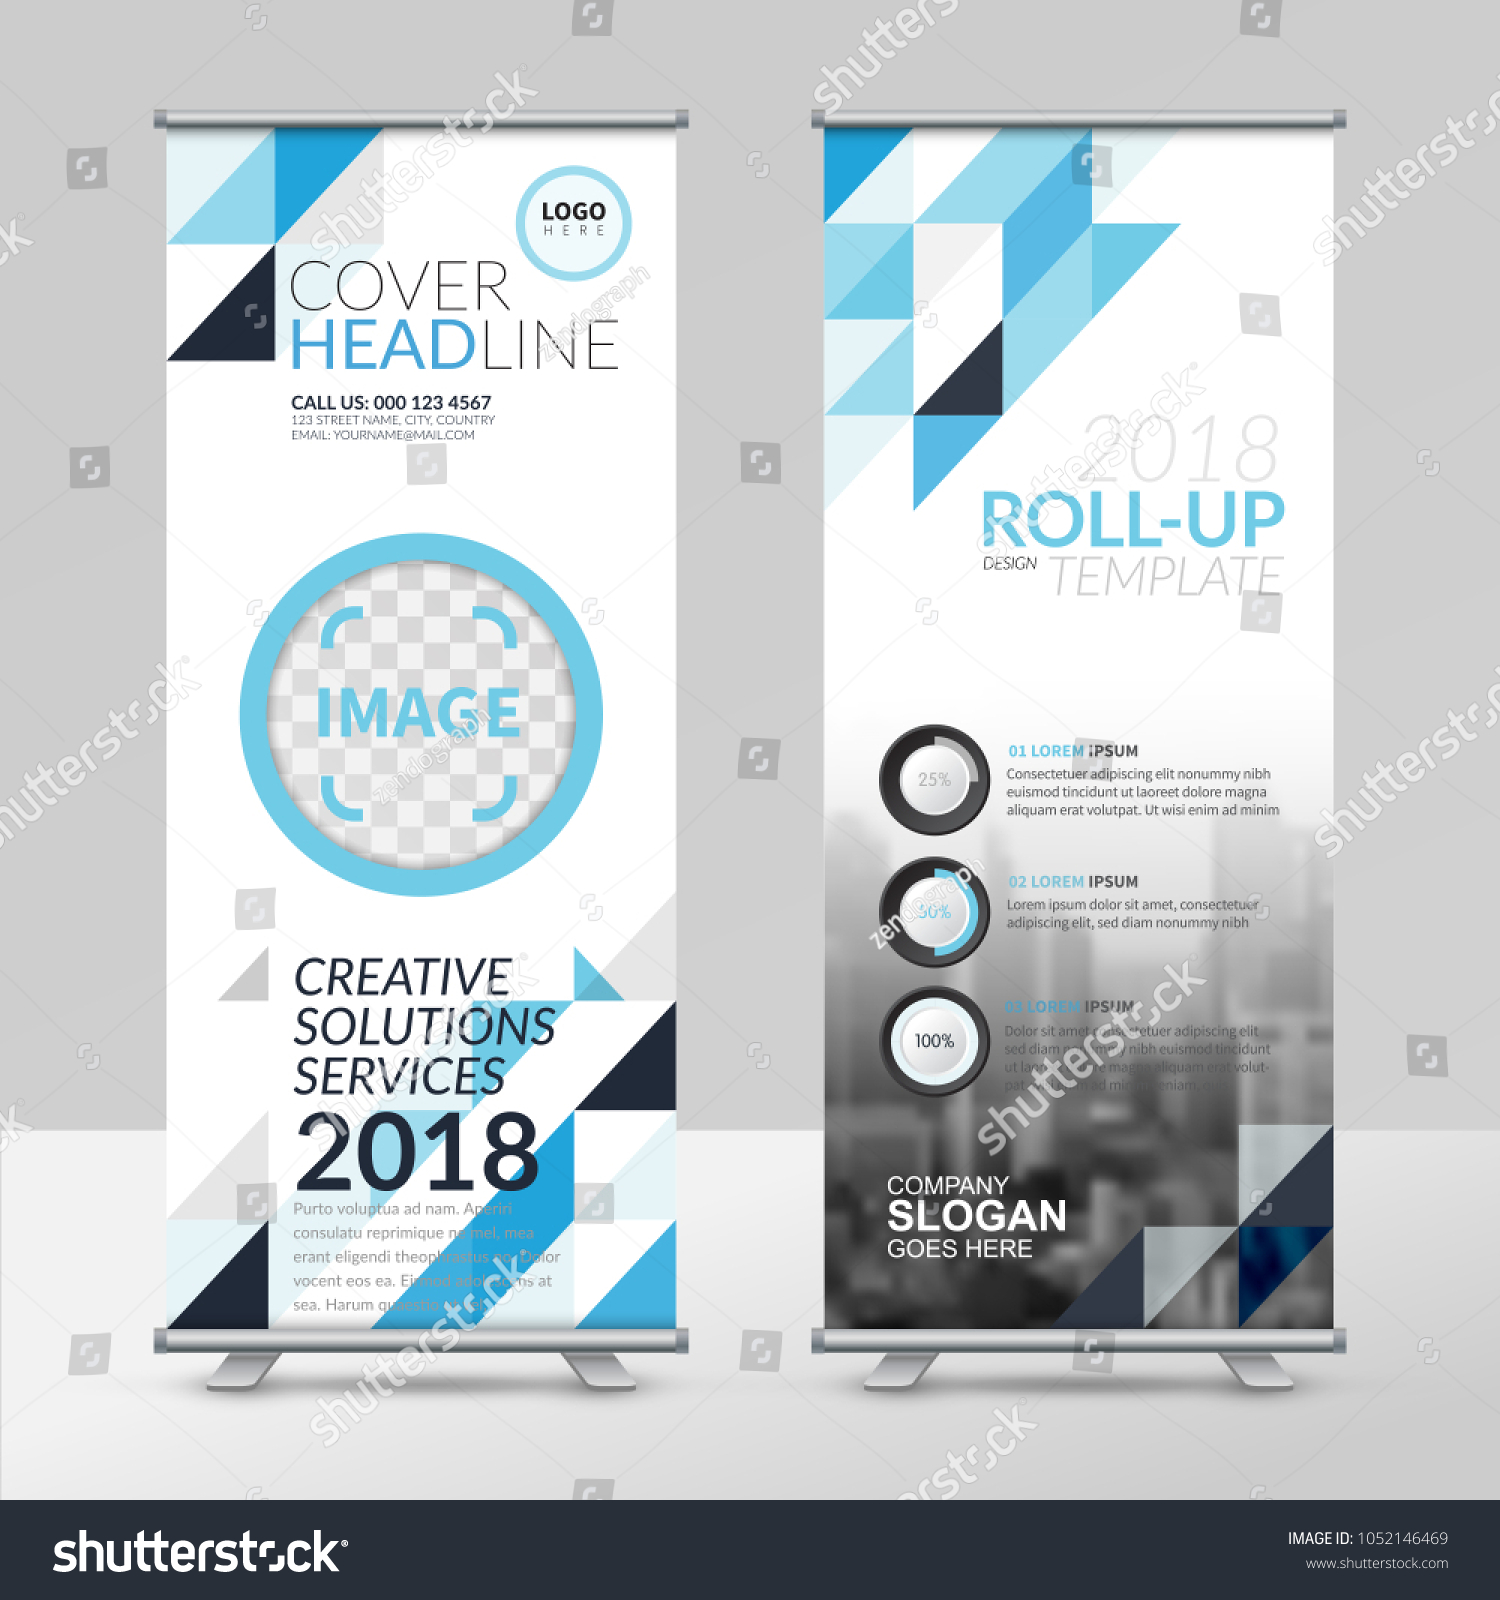 Business Roll Design Template X Stand Stock Vector 1052146469 ...